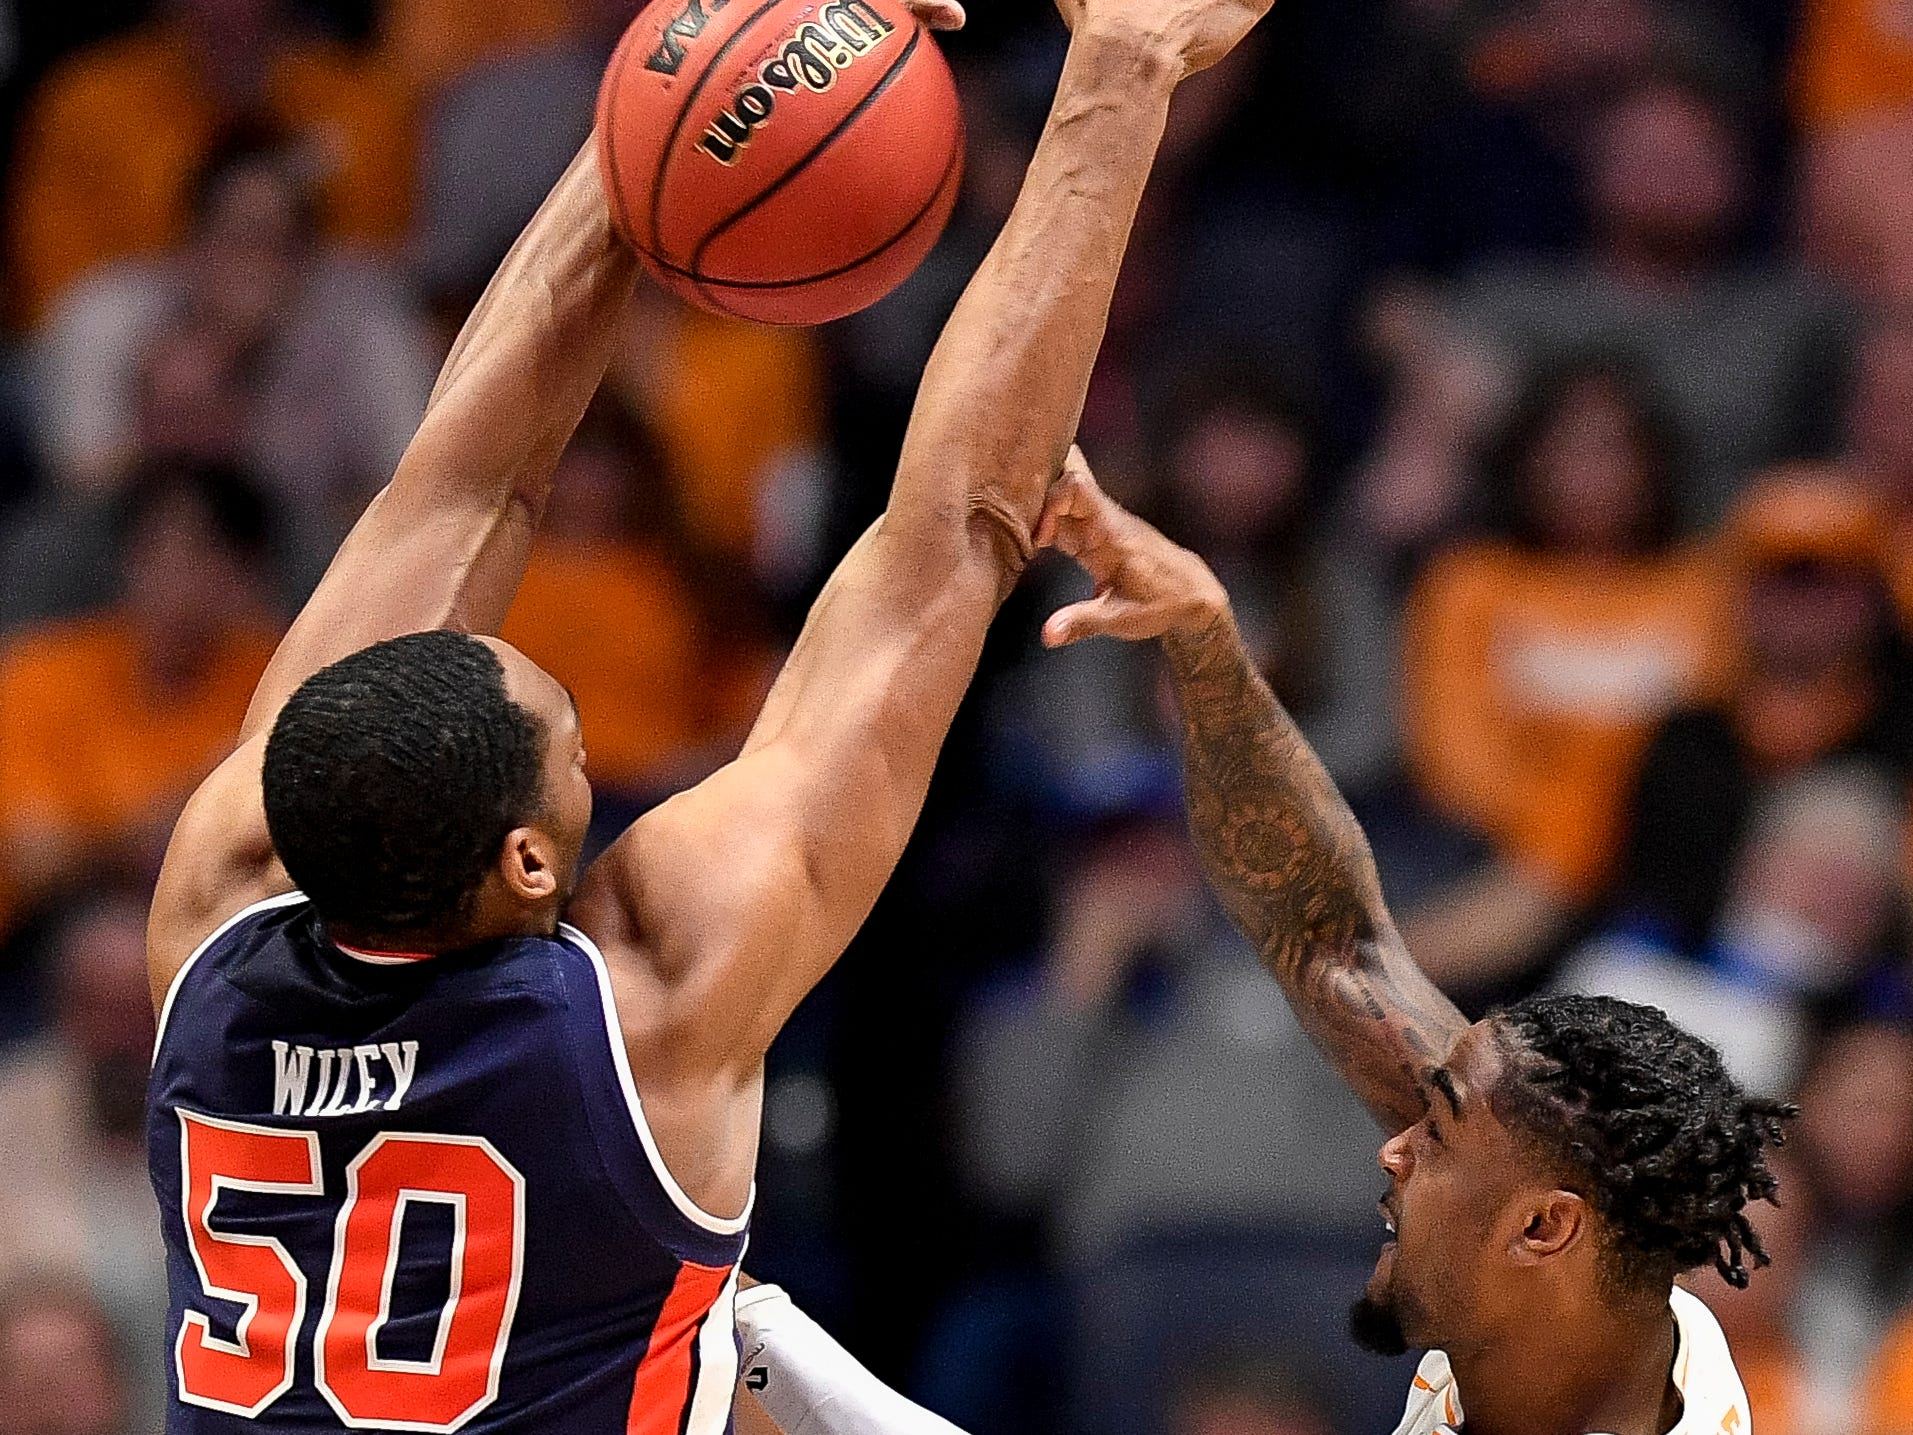 Auburn center Austin Wiley (50) defends against Tennessee guard Jordan Bone (0) during the second half of the SEC Men's Basketball Tournament championship game at Bridgestone Arena in Nashville, Tenn., Sunday, March 17, 2019.